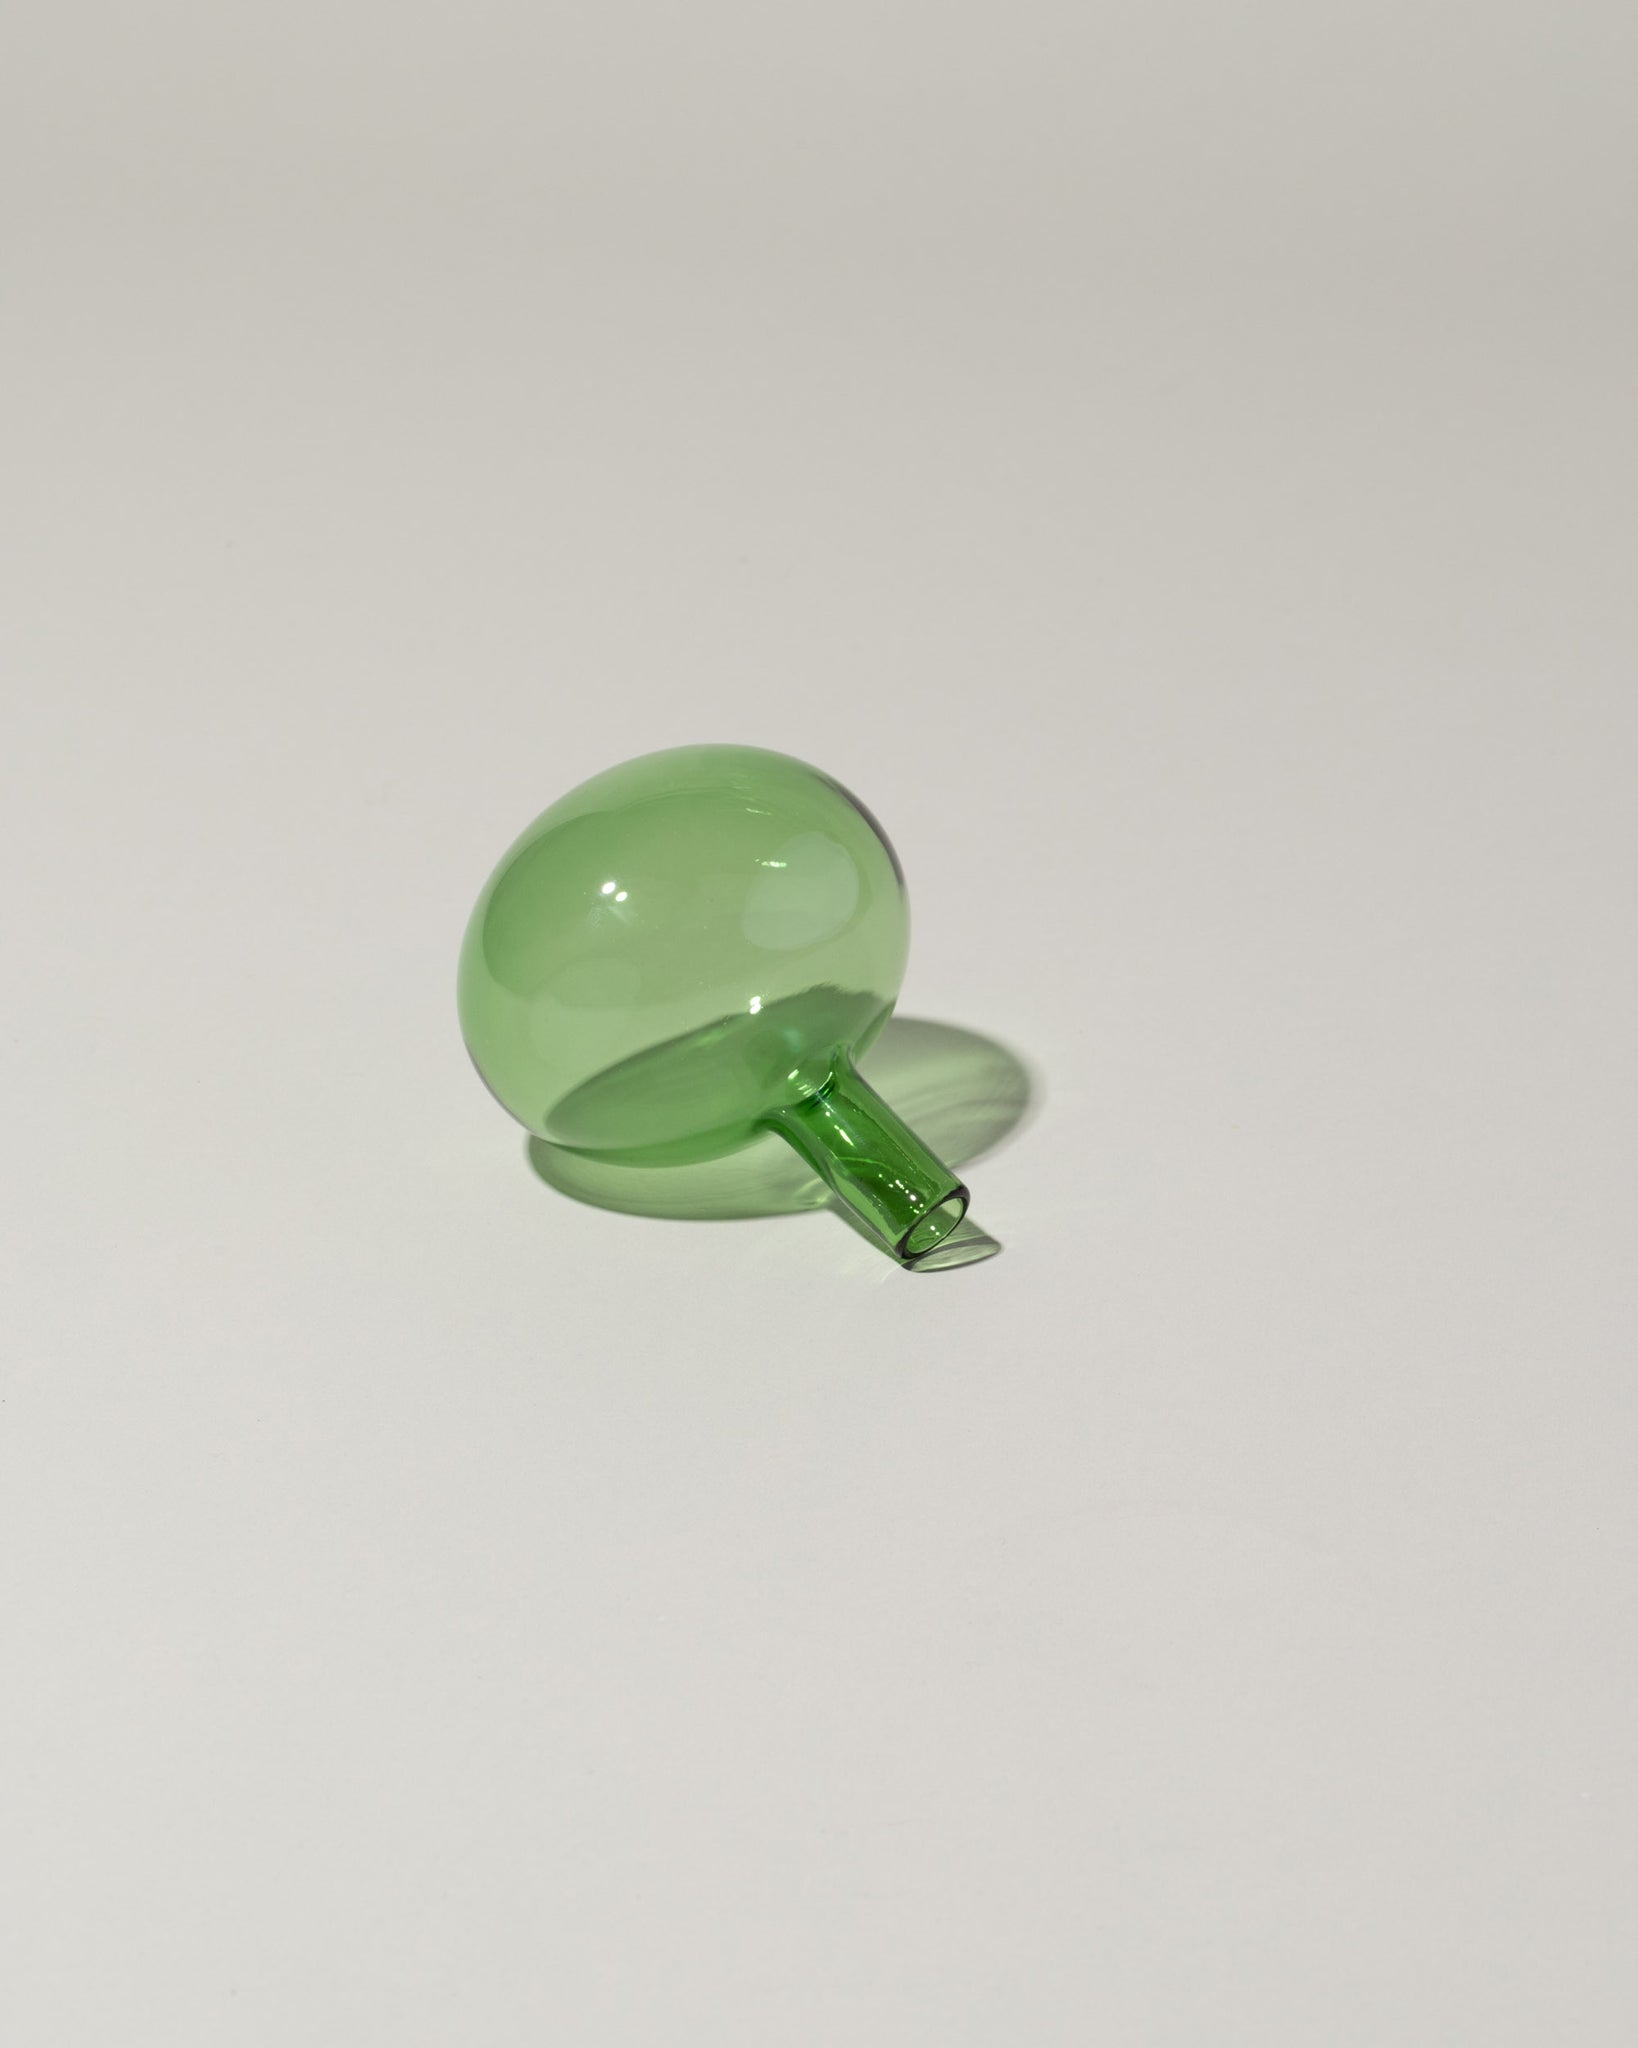 Laurence Brabant Entracte Wine Bottle Stopper Green side view